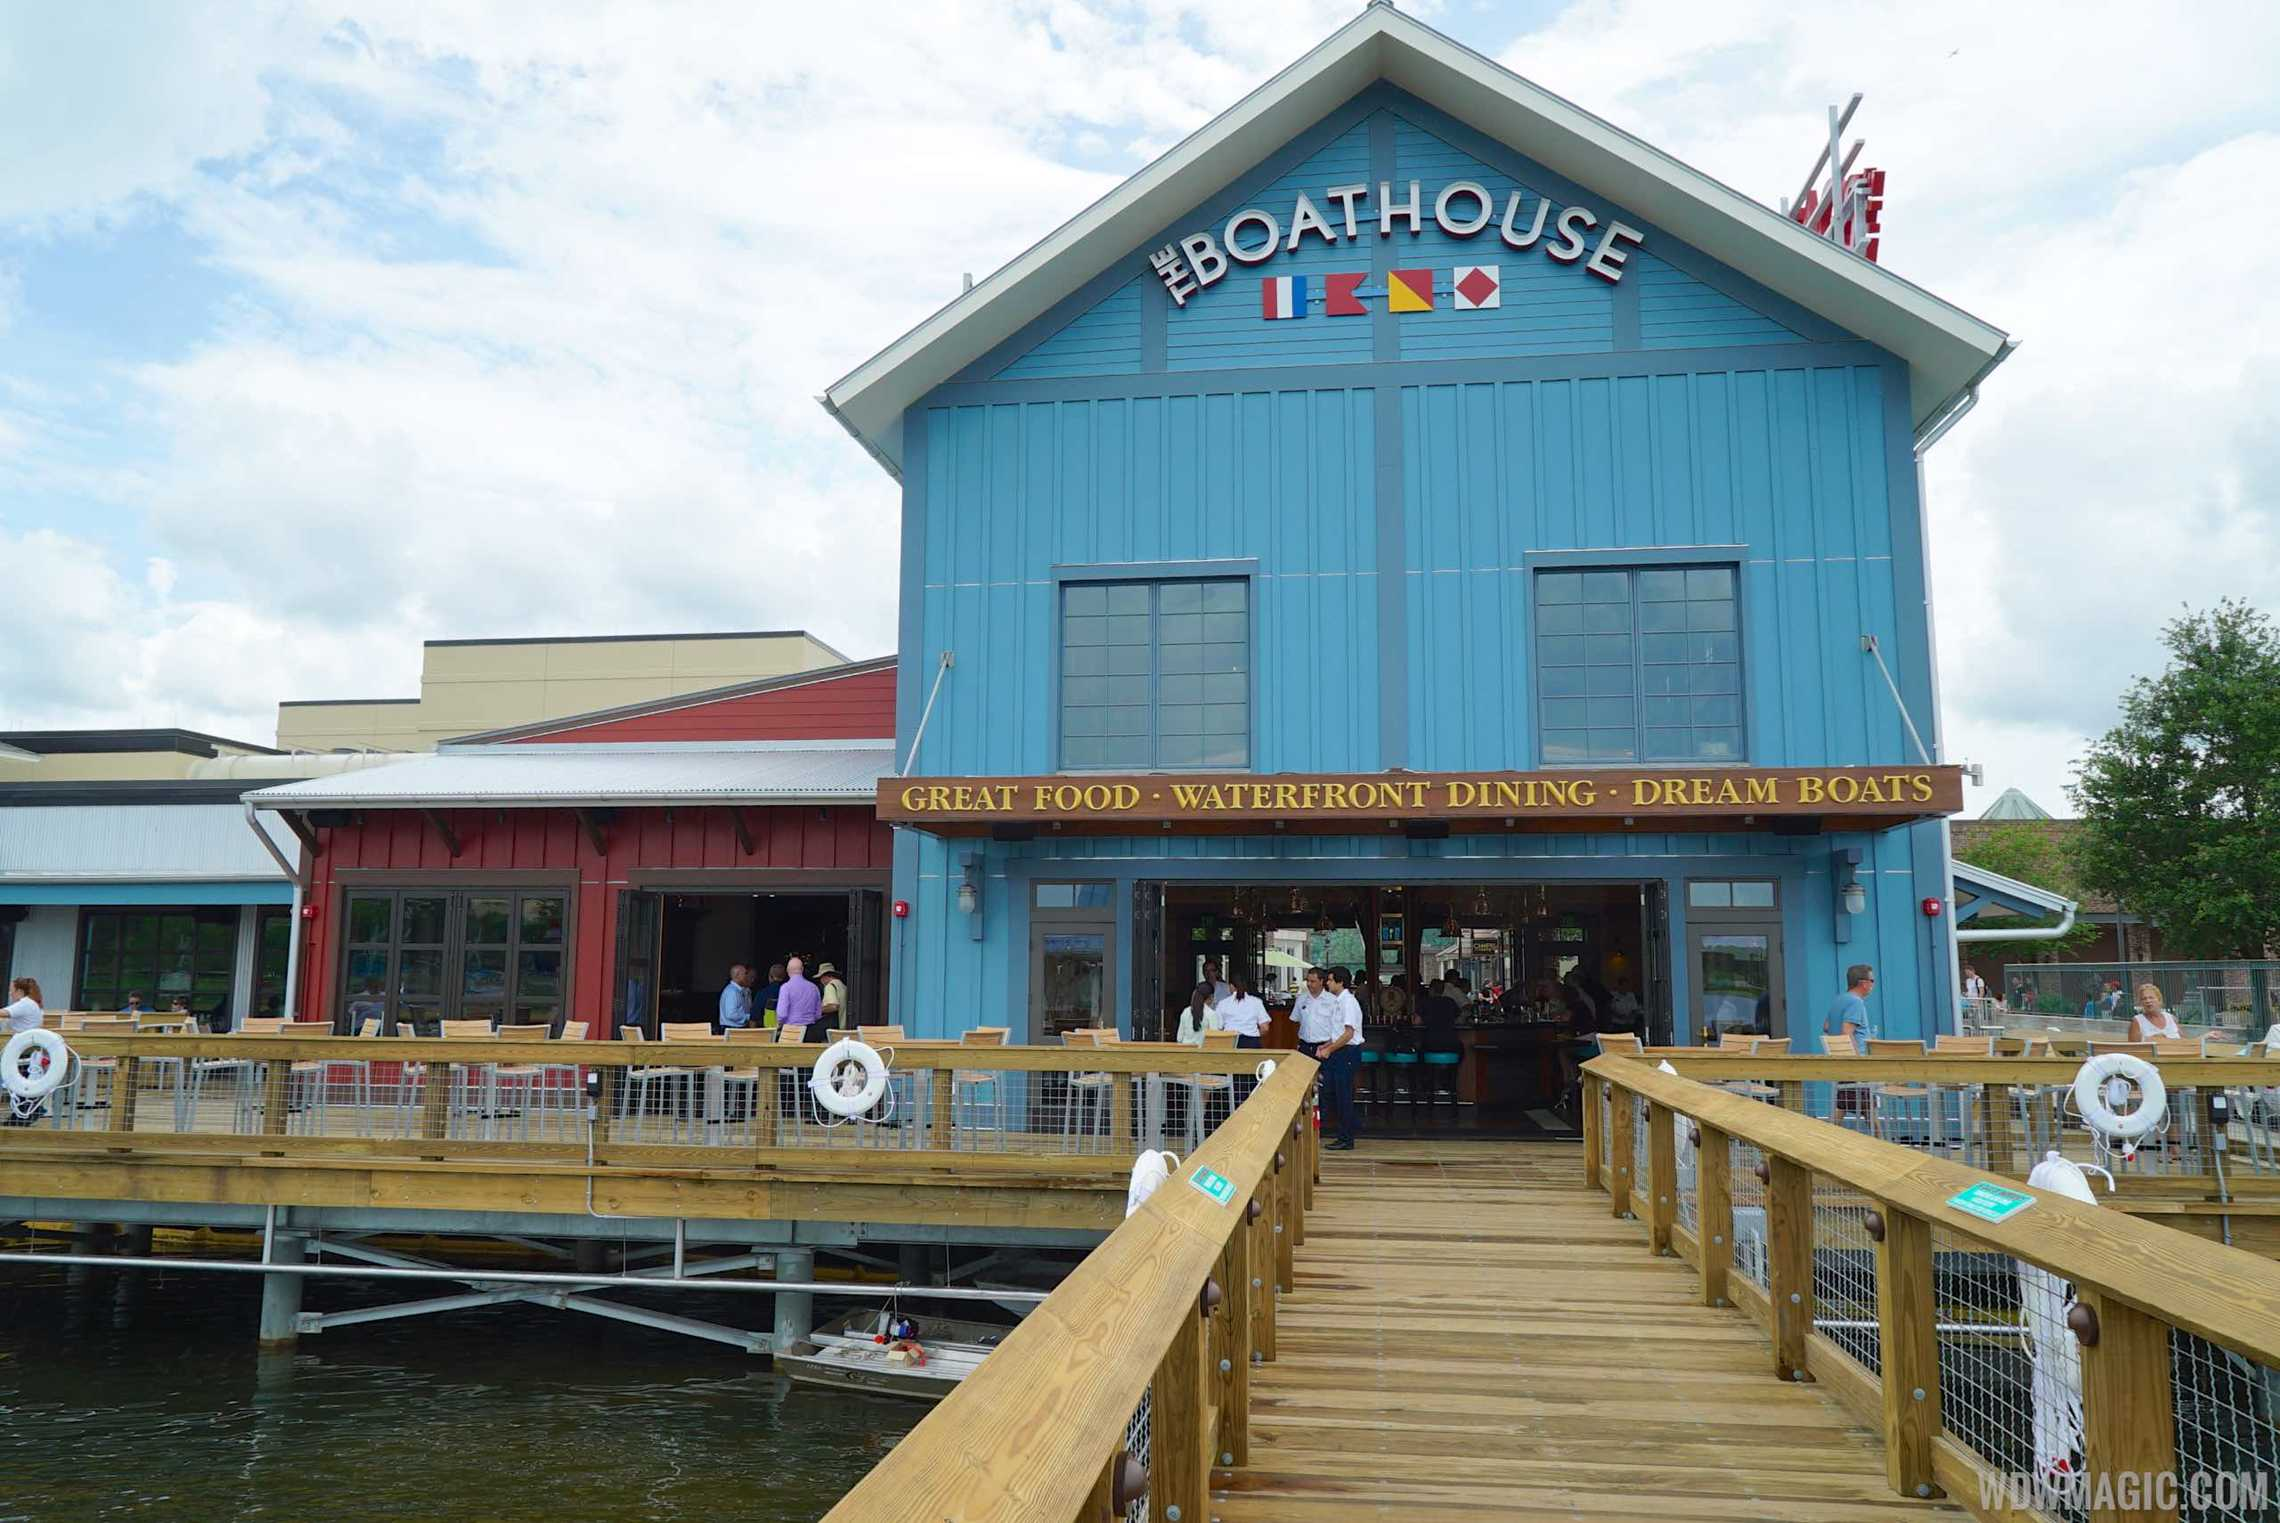 The BOATHOUSE - Waterside of The BOATHOUSE